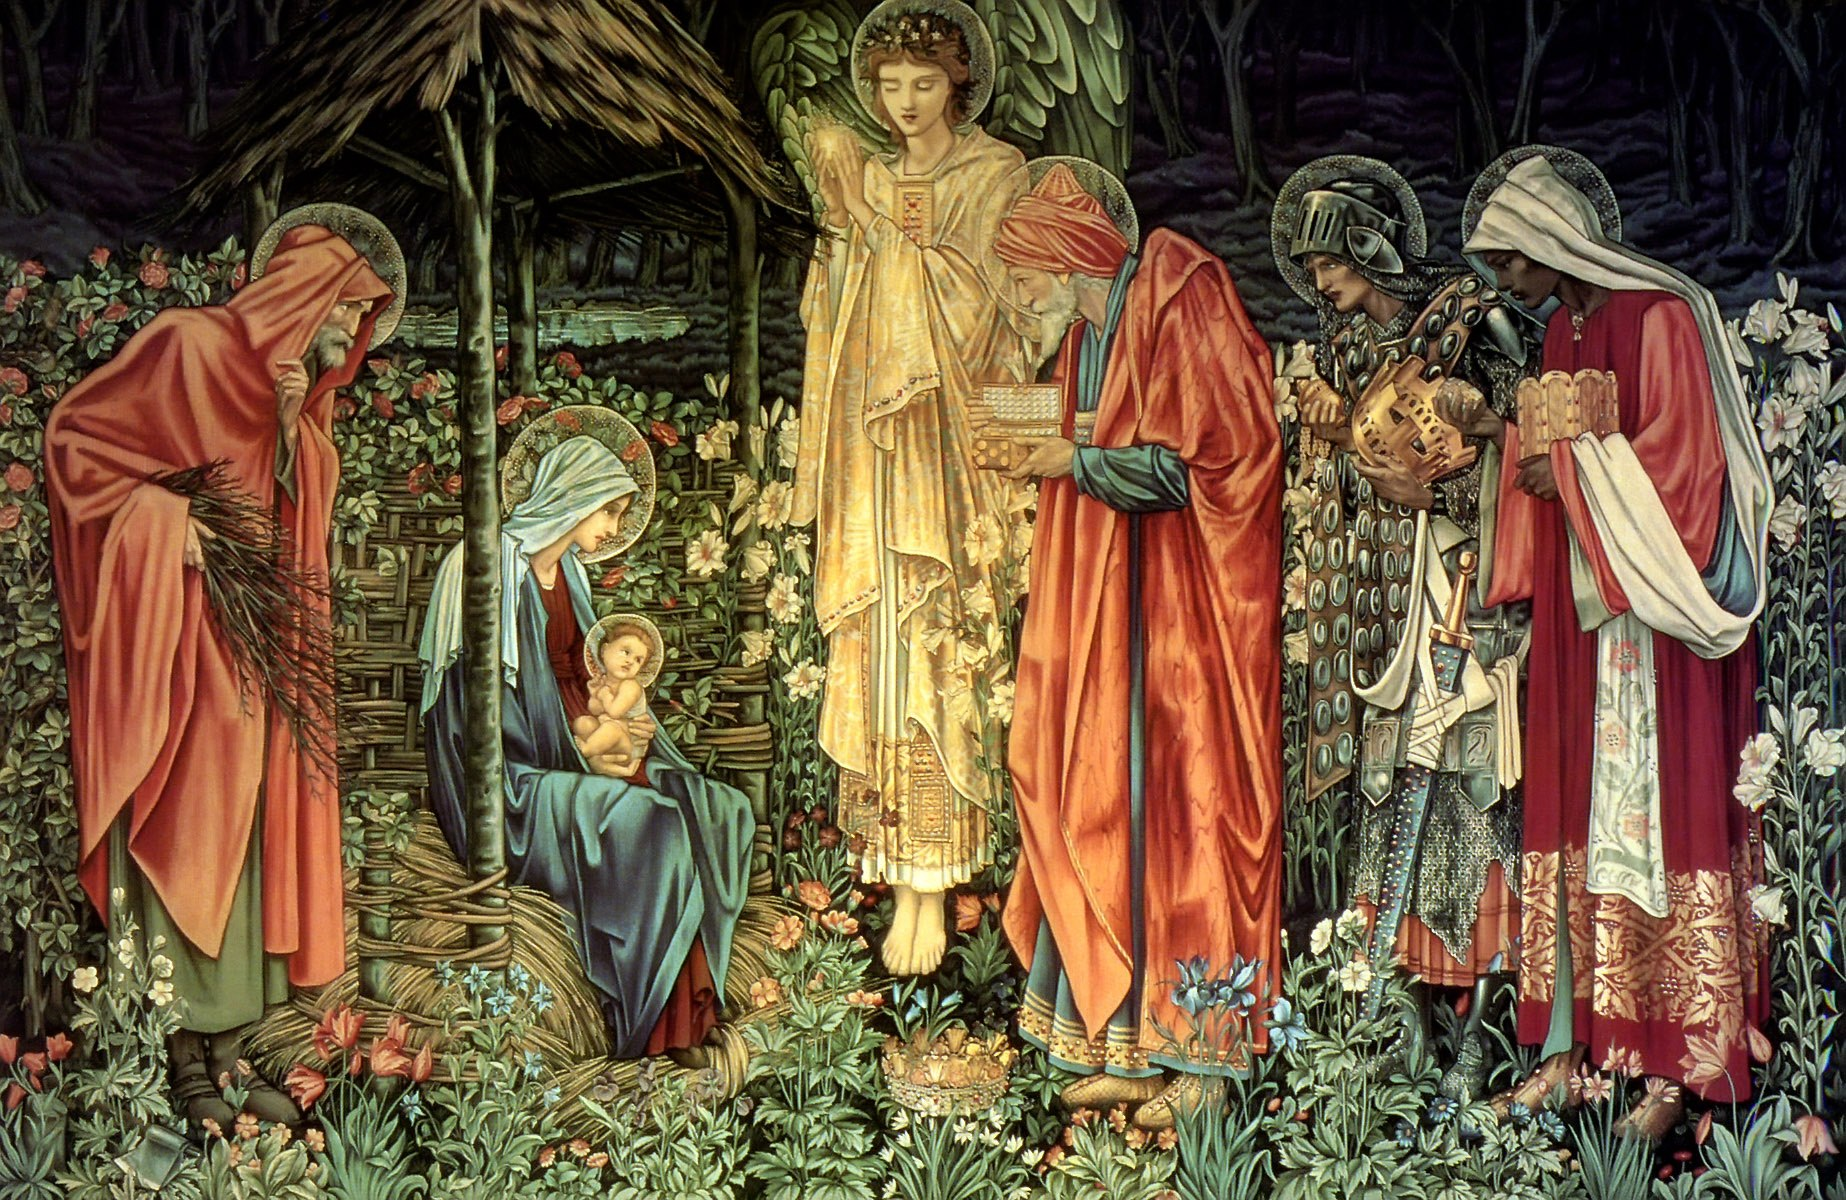 The Epiphany of Our Lord Jesus Christ